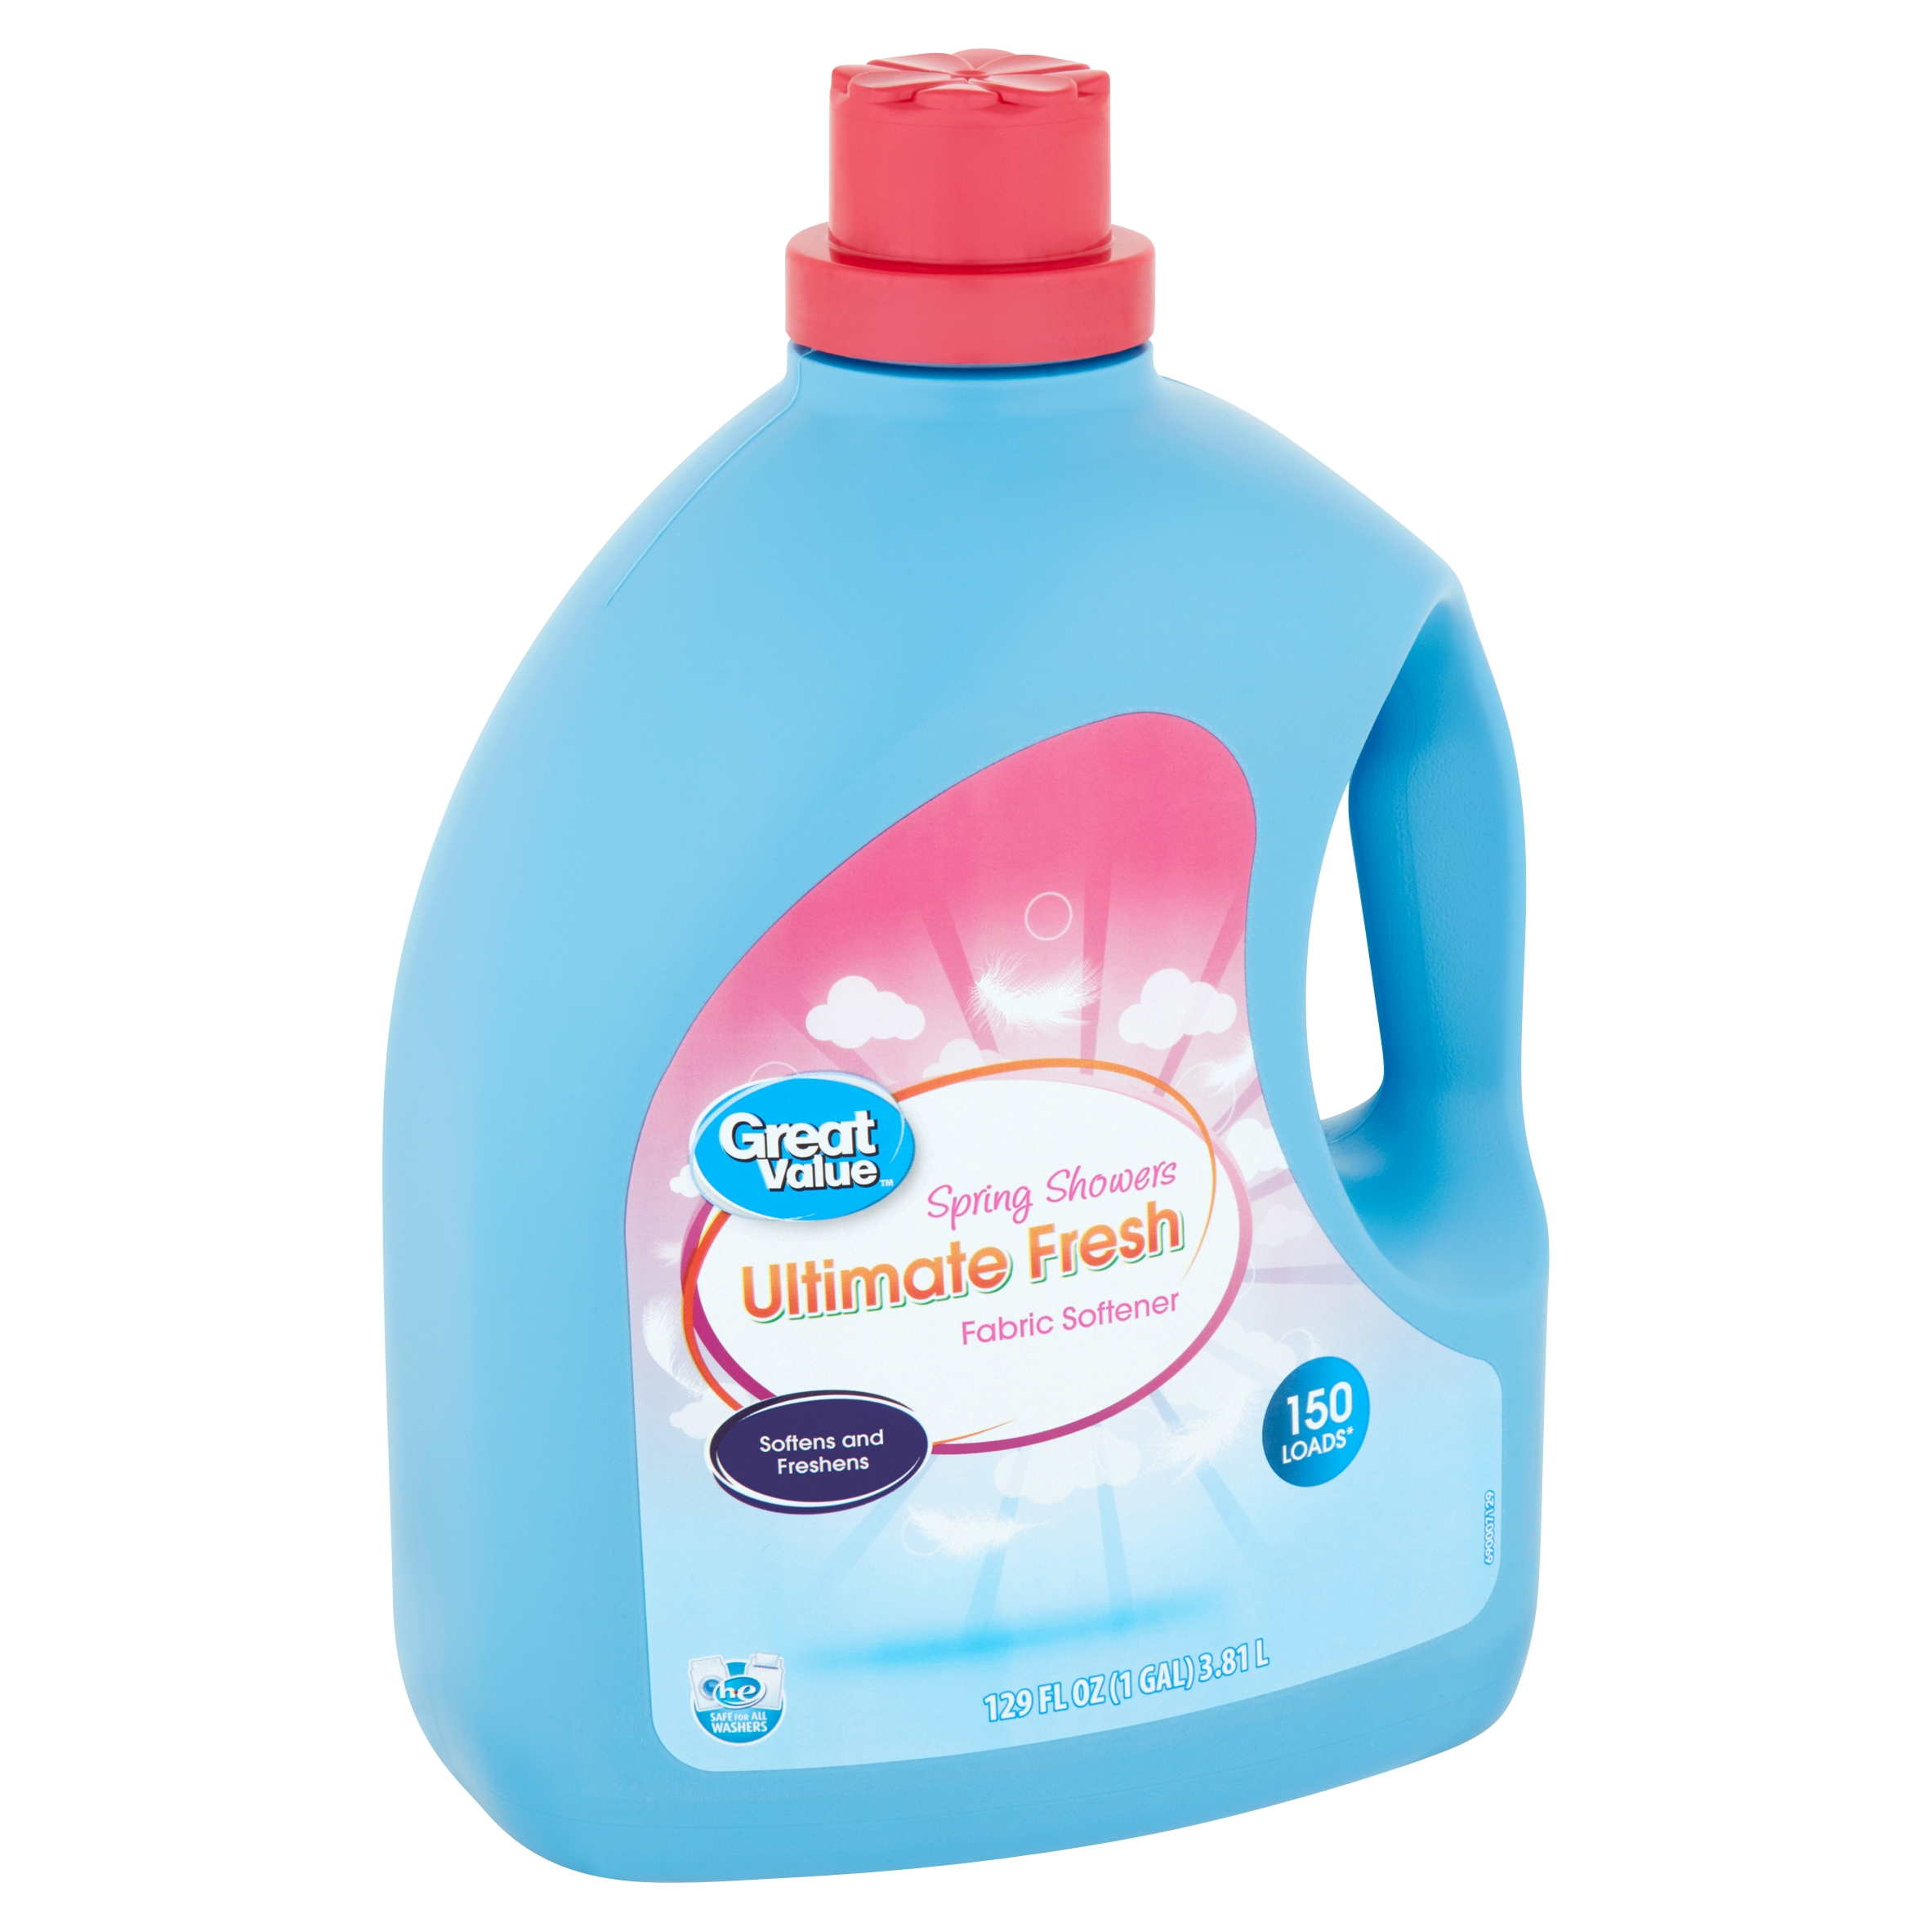 Great Value Ultimate Fresh Spring Showers Fabric Softener